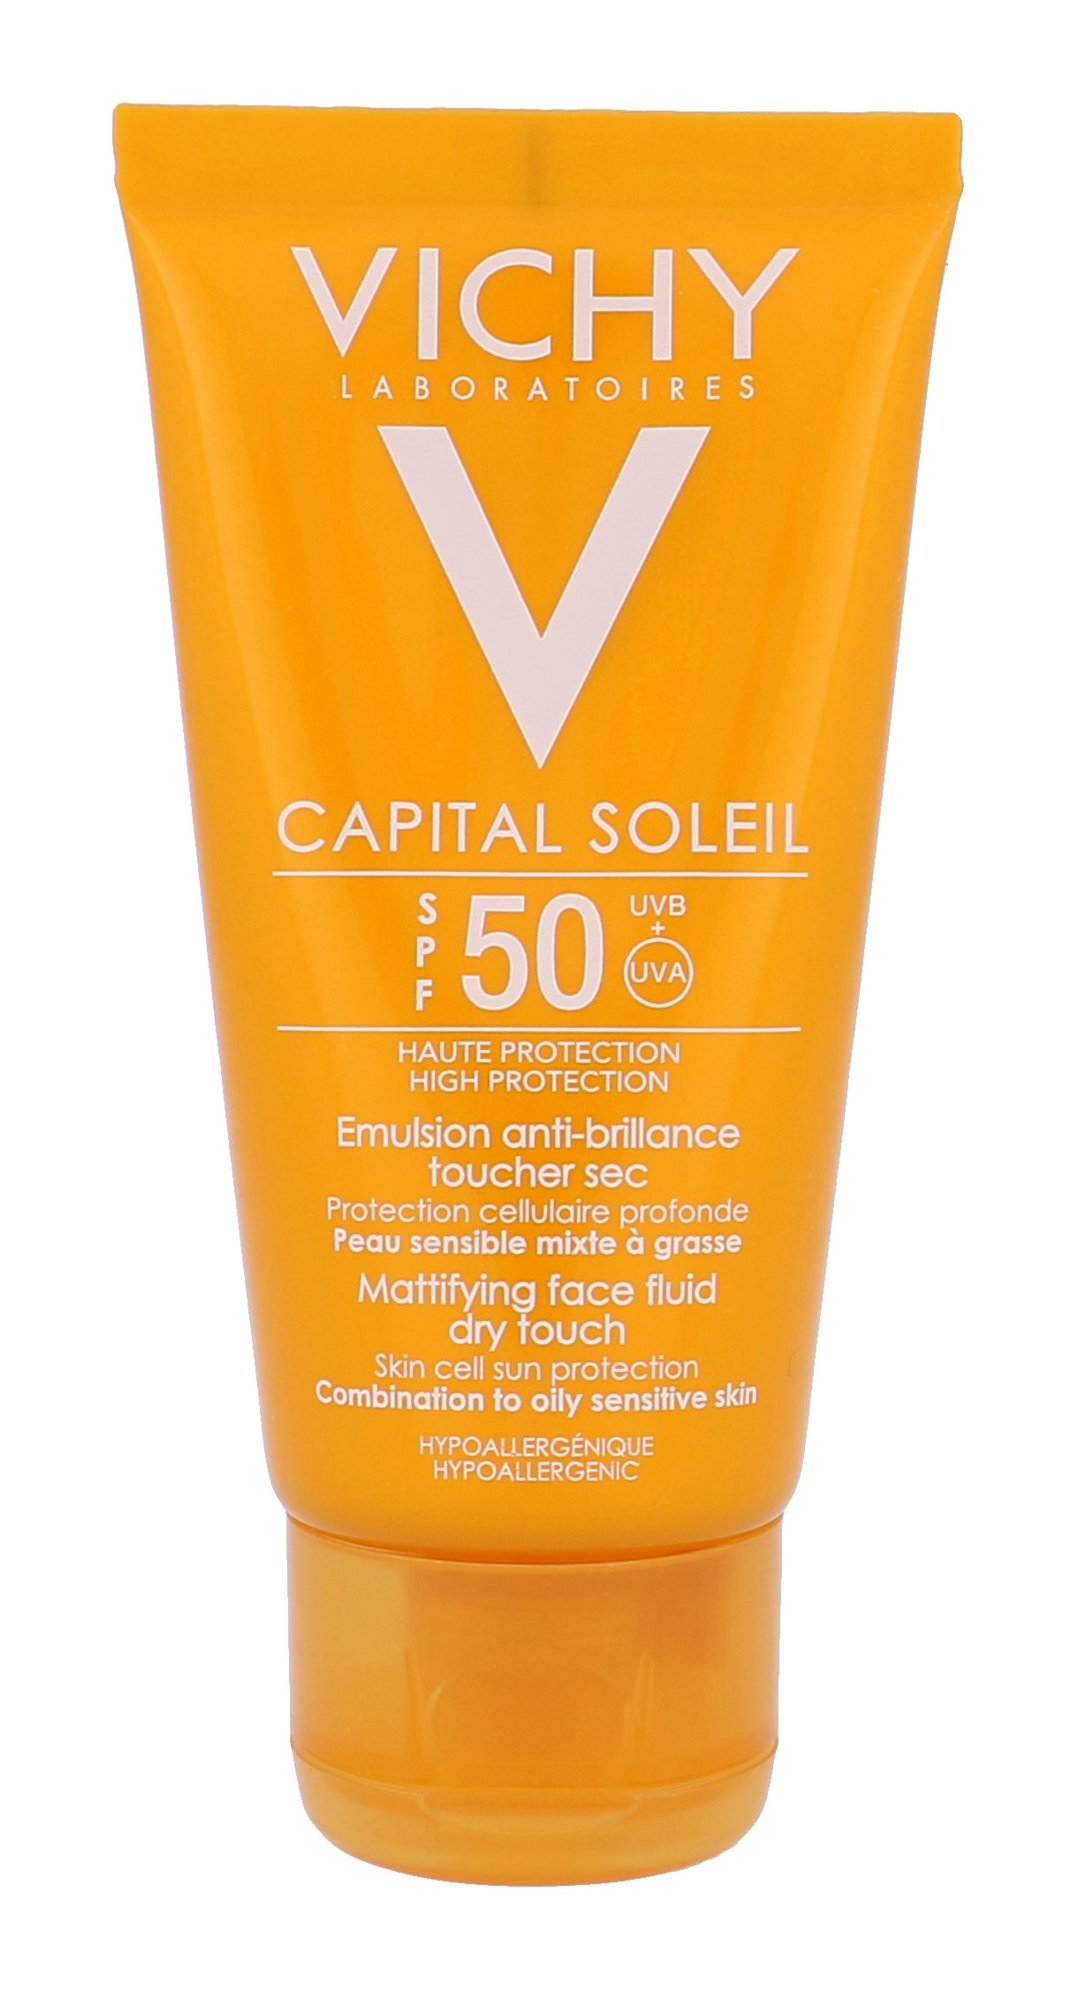 Vichy Capital Soleil Face Fluid SPF50 Cosmetic 50ml